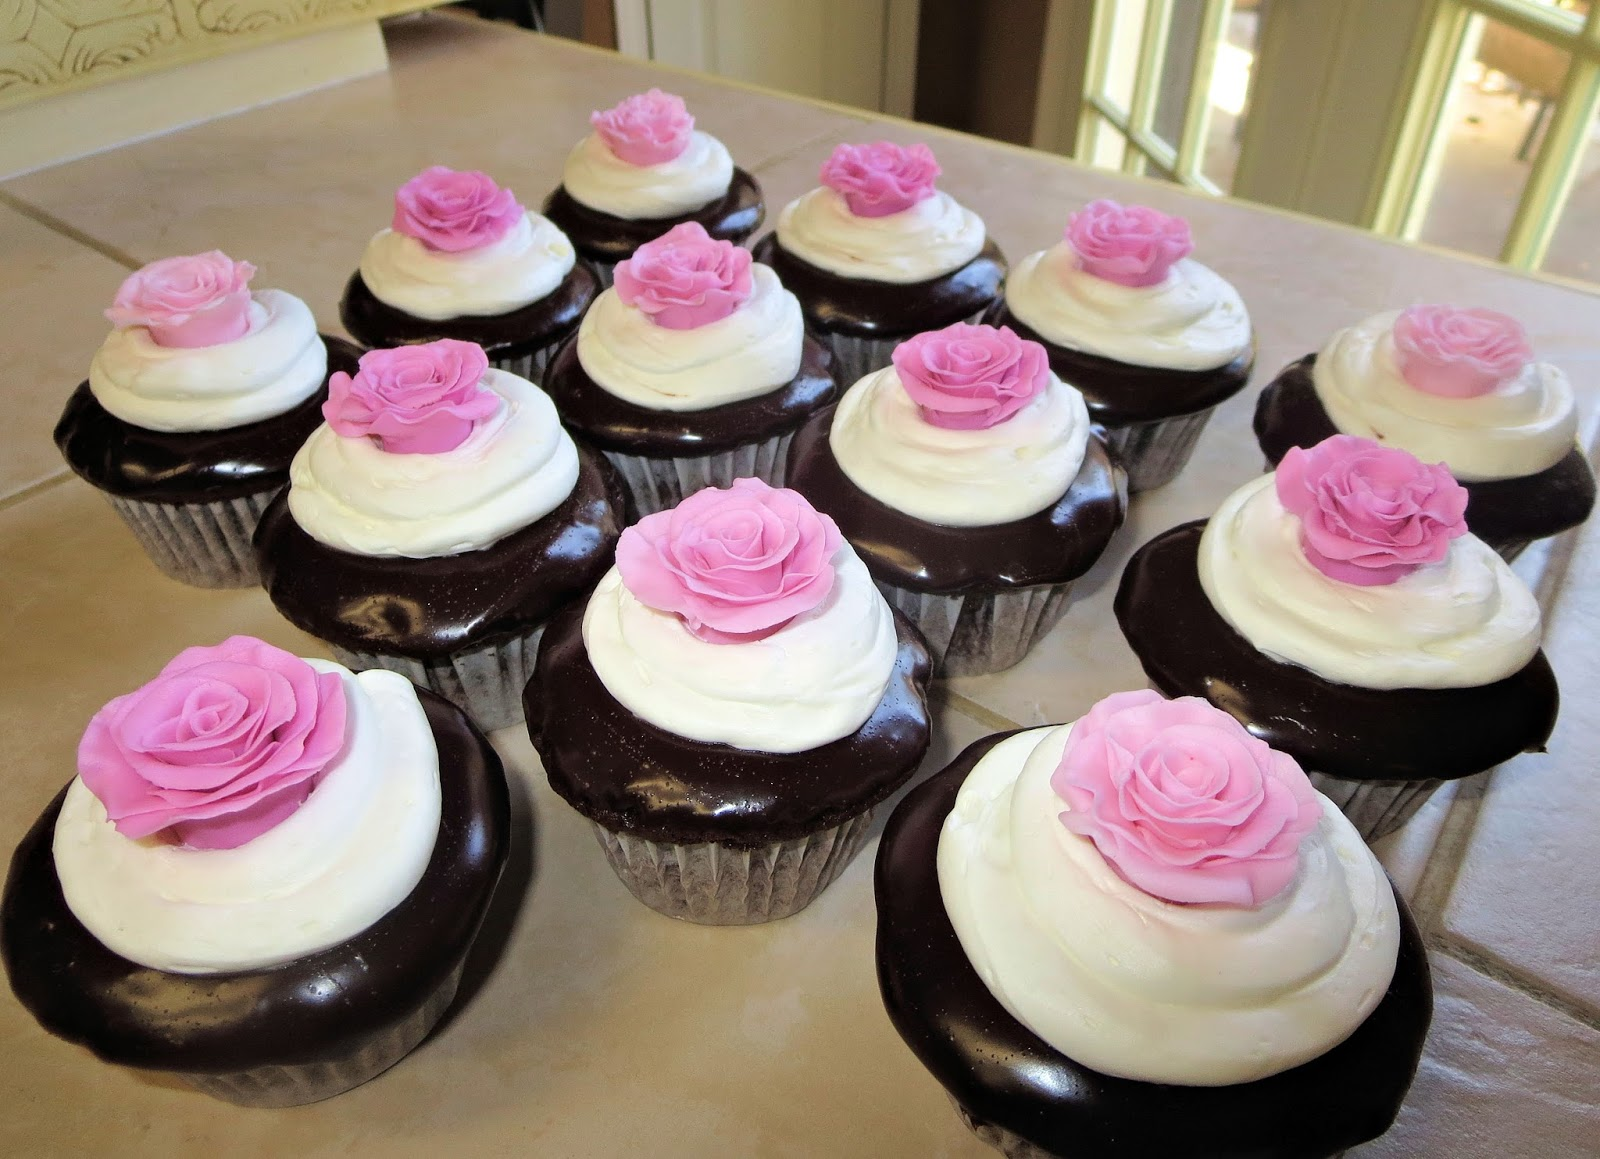 how to make a rose out of fondant for cupcakes